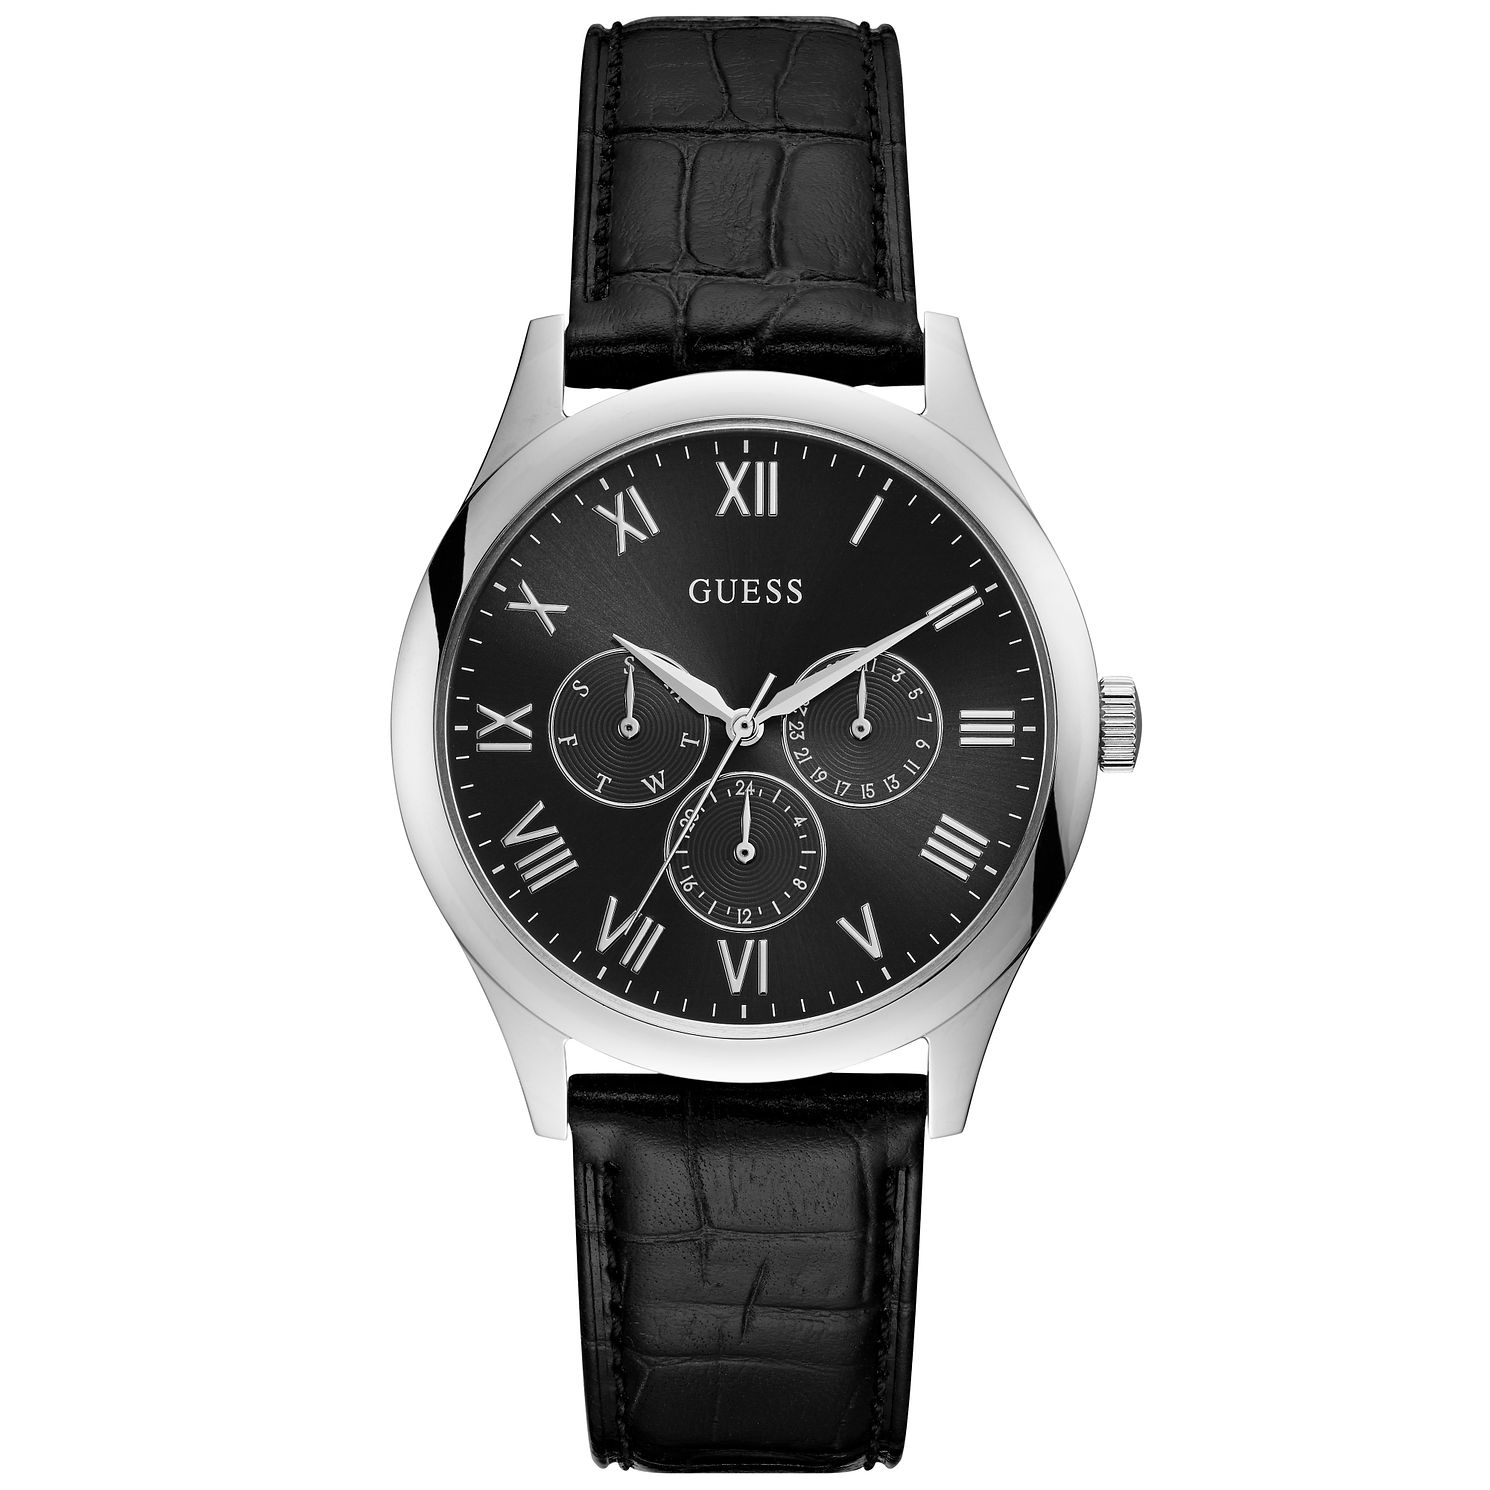 Guess Men's Black Dial Silver Watch - Product number 9655328